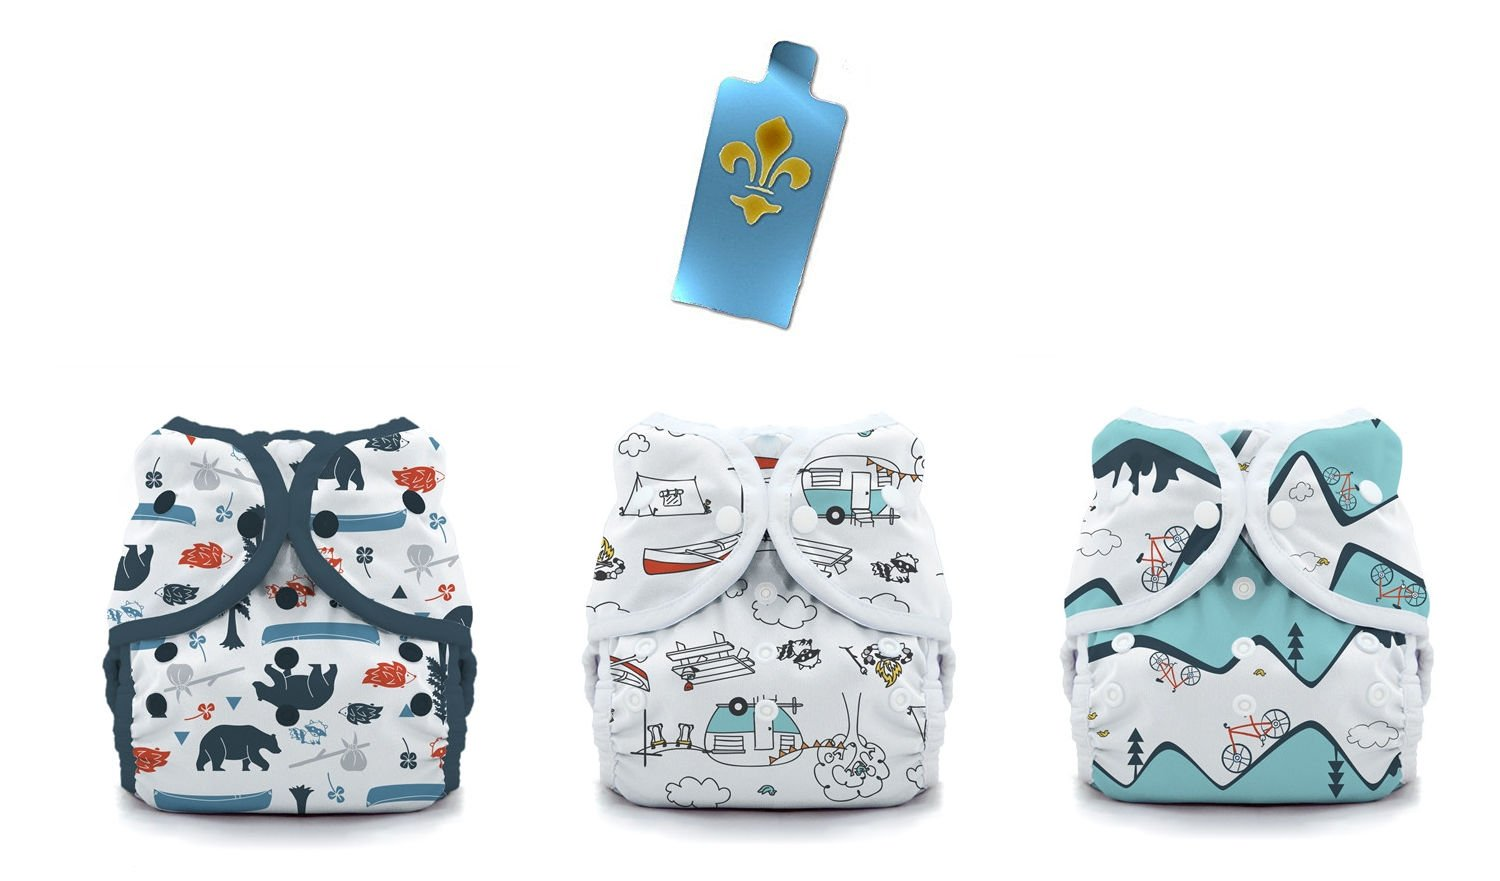 Thirsties Duo Wrap Snaps Diaper Covers 3 pack Combo: Adventure, Happy Camper, Mountain BikeSz 1